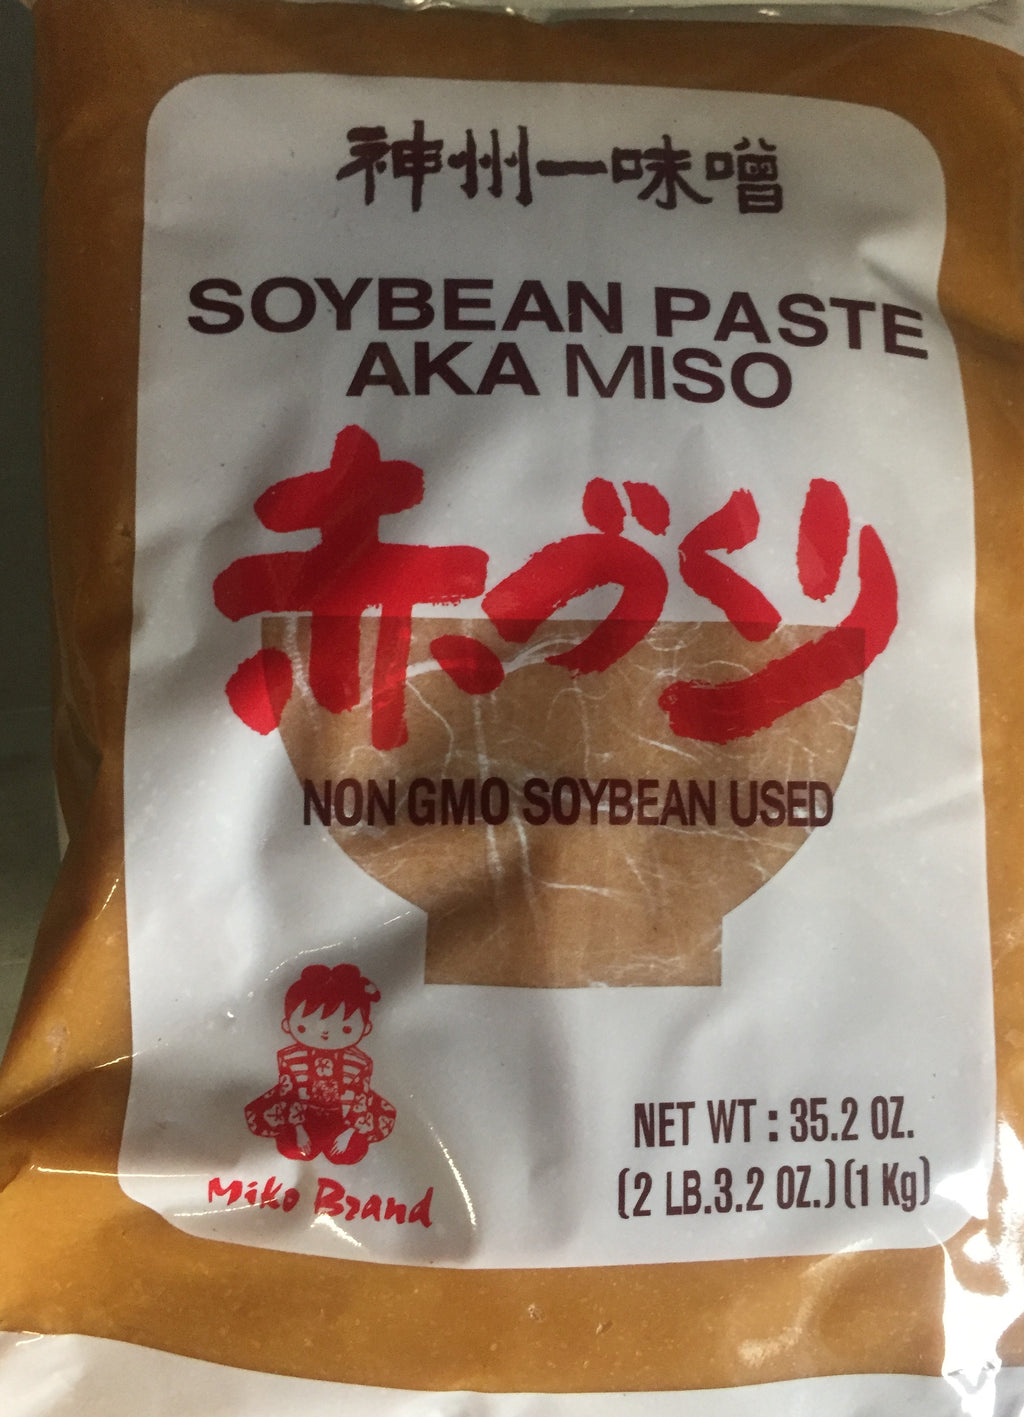 Red Miso Paste Marukome 1kg Packet